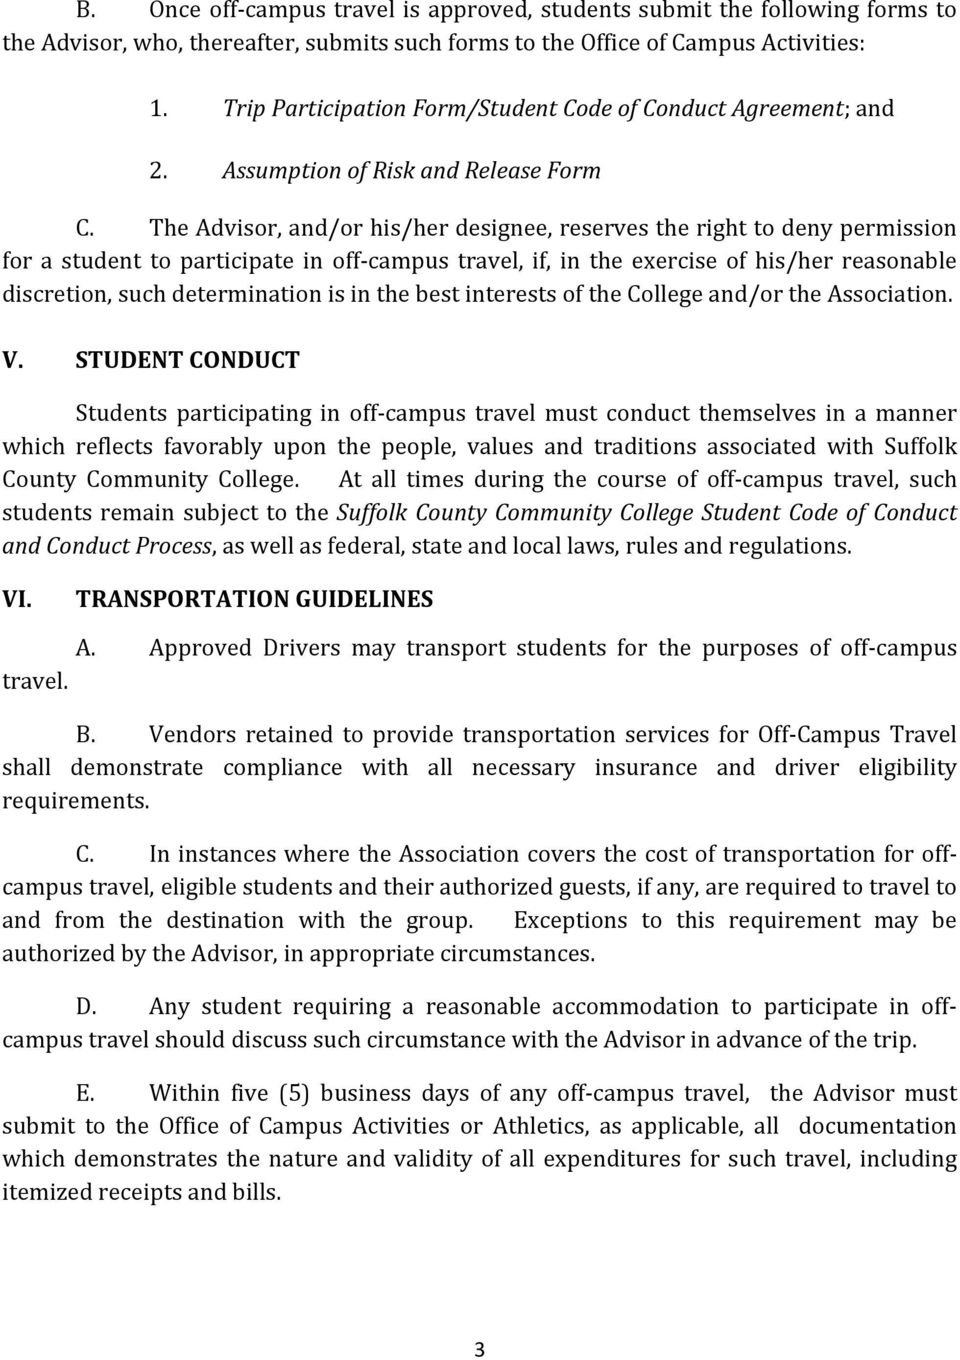 The Advisor, and/or his/her designee, reserves the right to deny permission for a student to participate in off-campus travel, if, in the exercise of his/her reasonable discretion, such determination